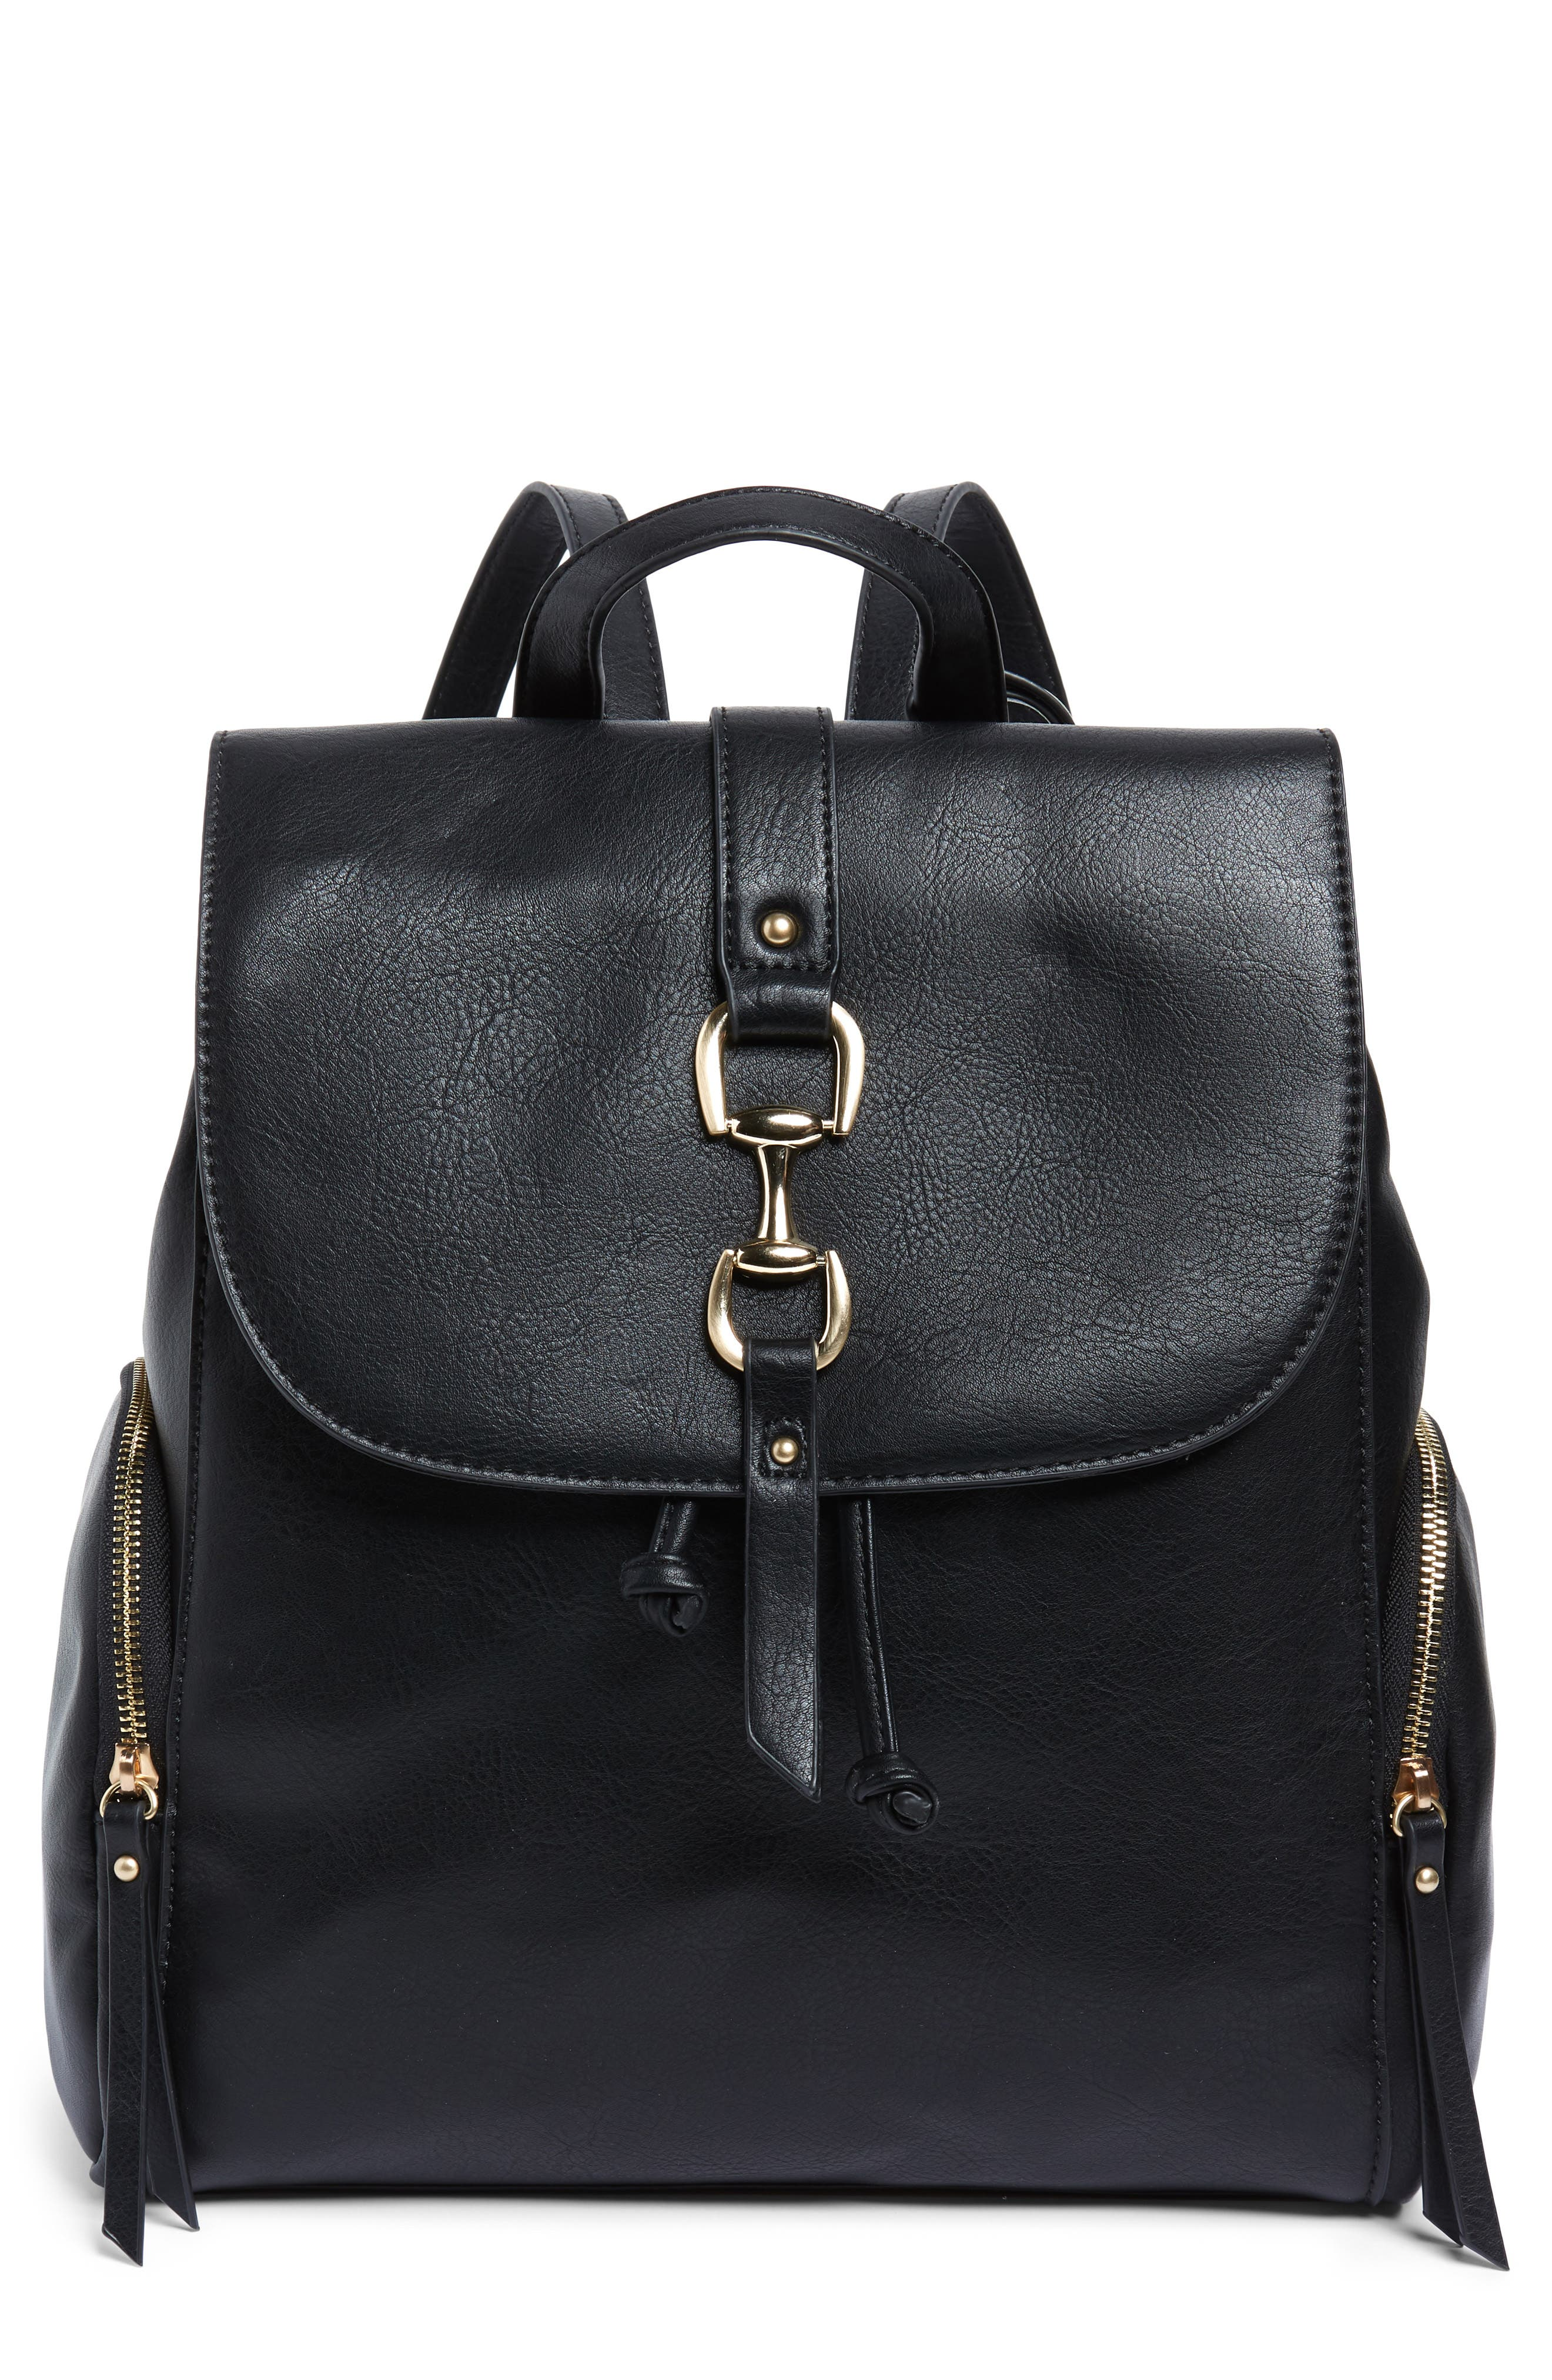 Marah Faux Leather Backpack,                         Main,                         color, BLACK